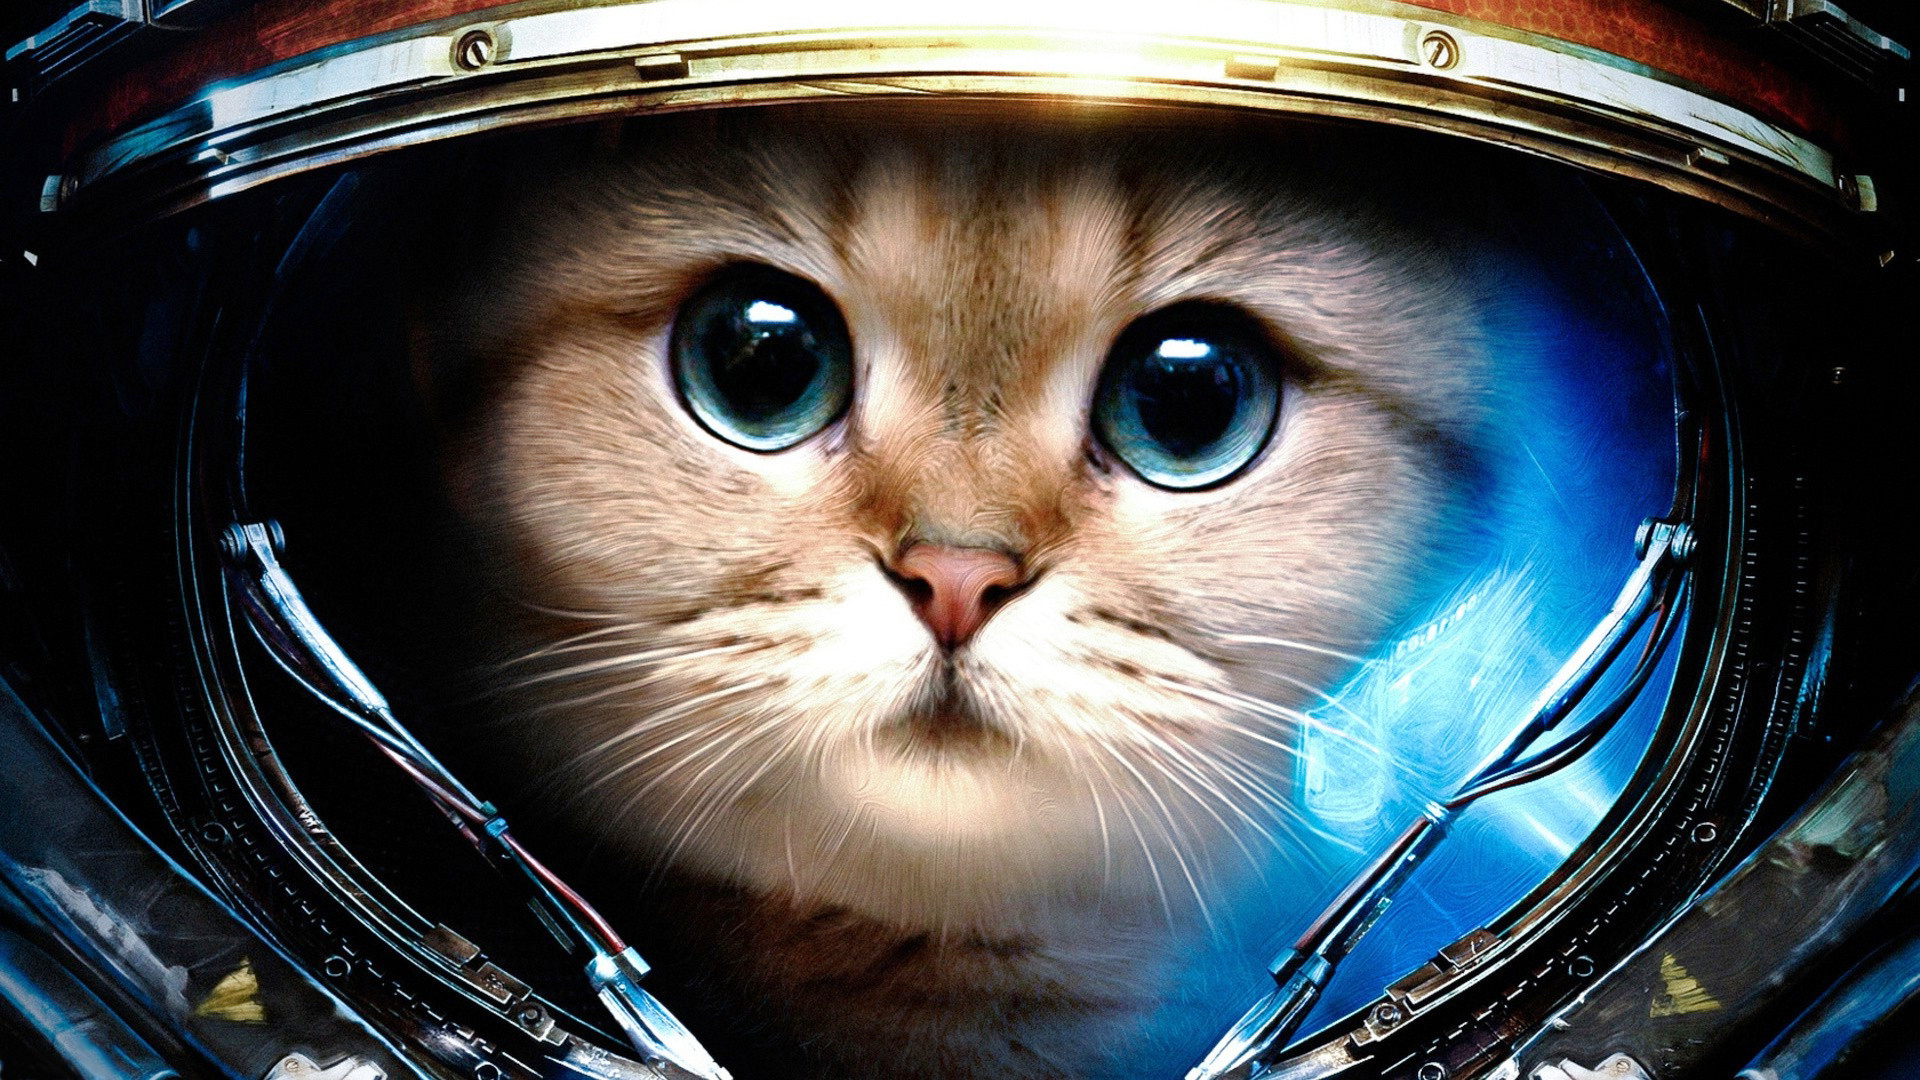 Res: 1920x1080, Space-cat-wallpapers.jpg